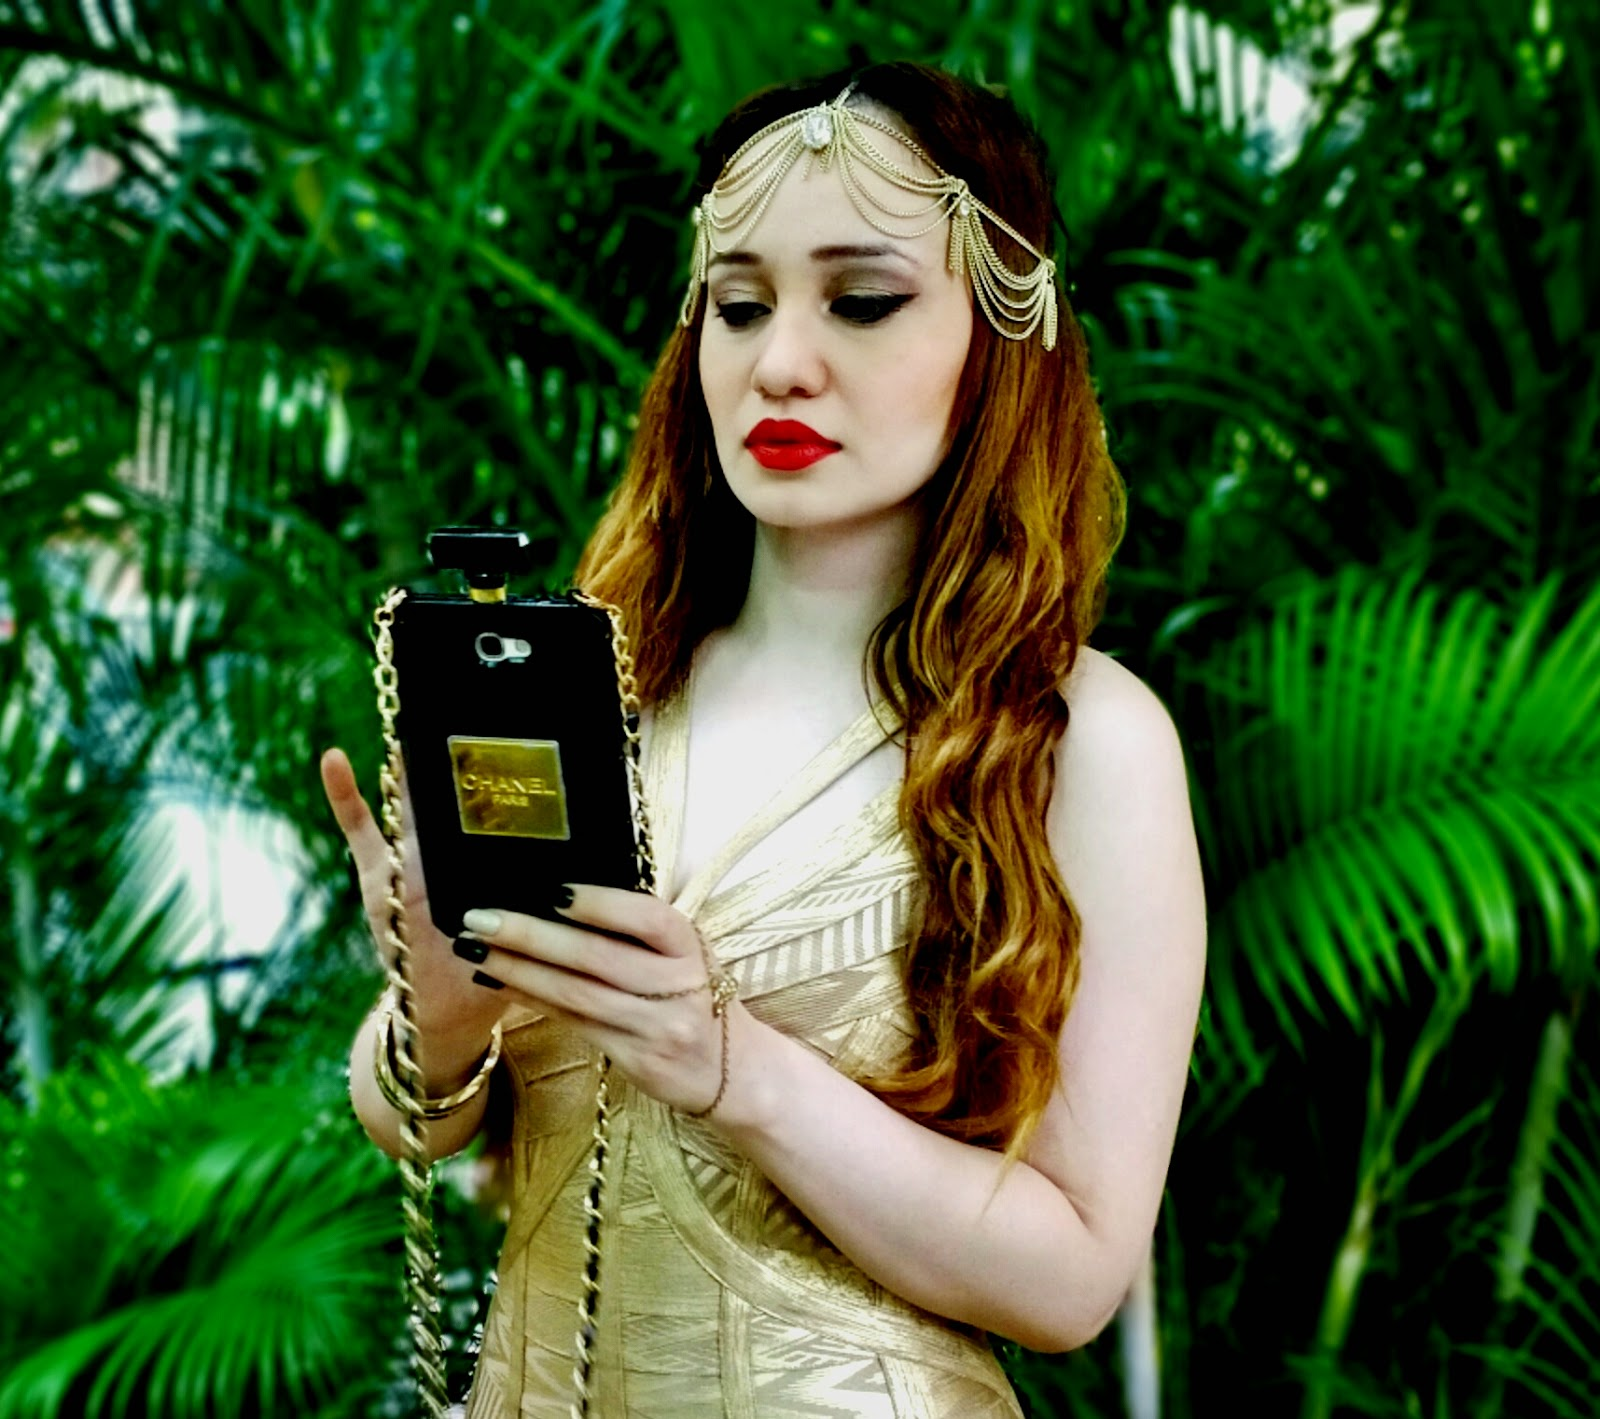 Gold Head-Chain, Chanel Perfume Bottle Phone Cover